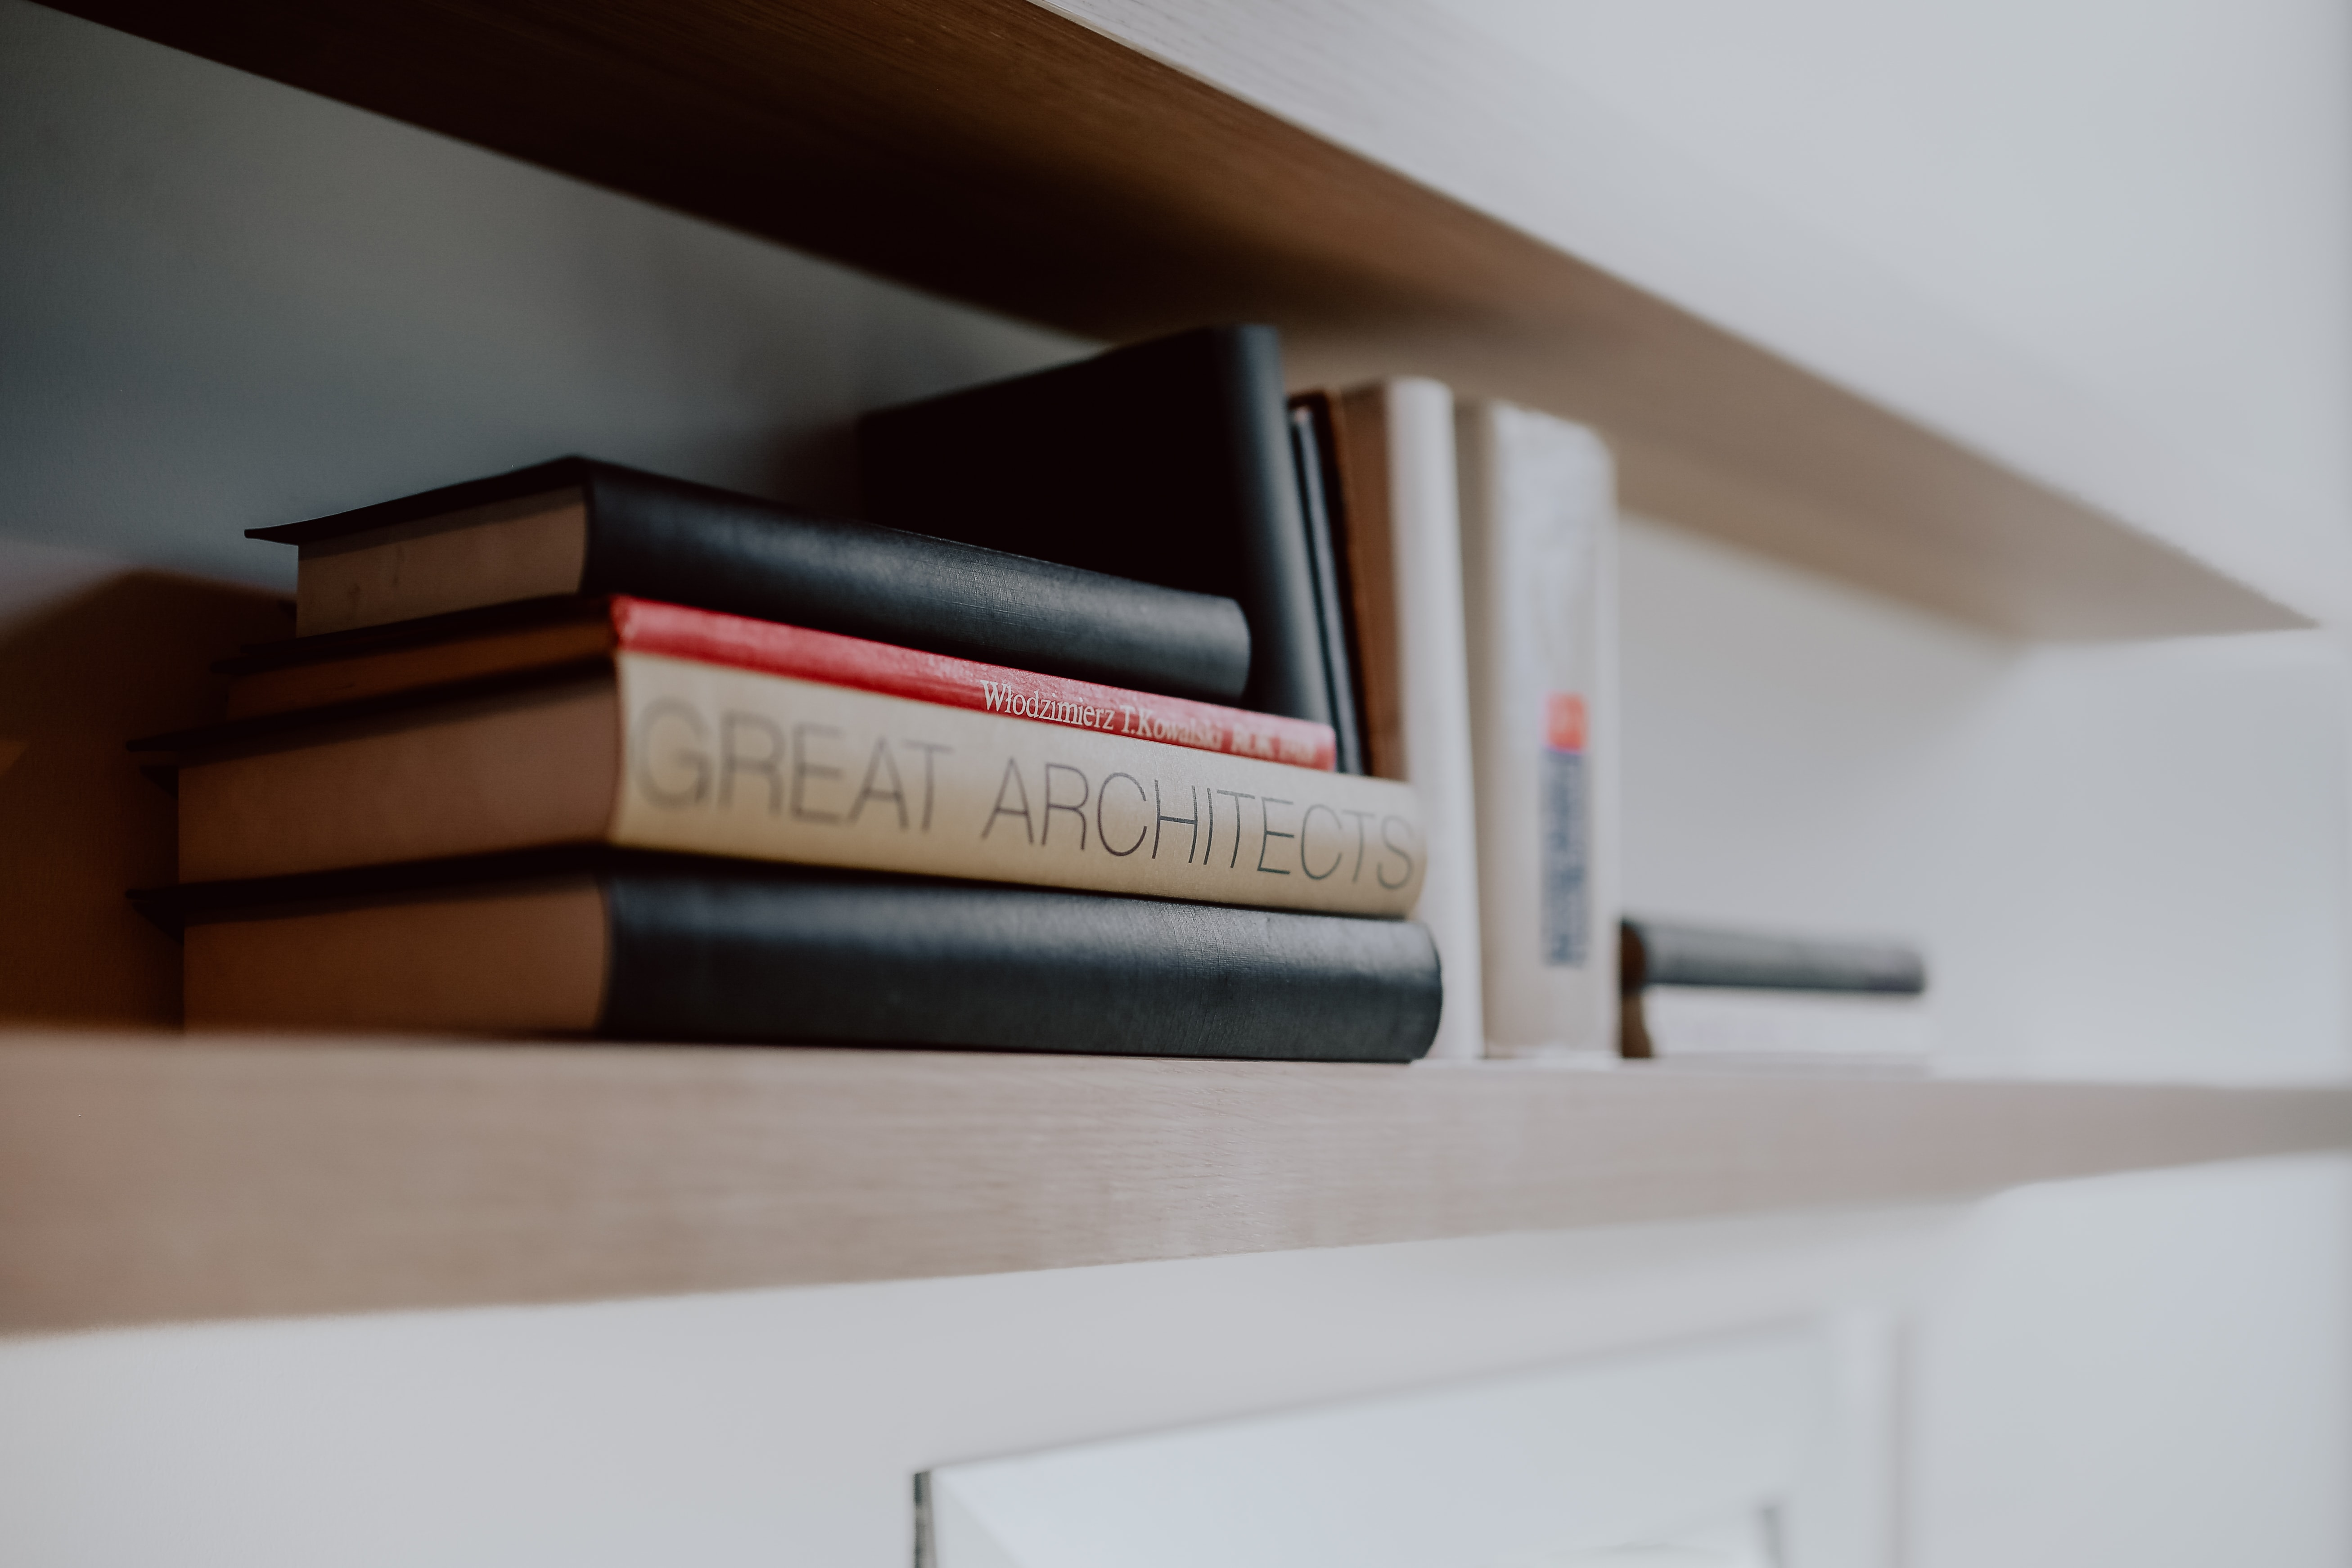 9 Best Books on Creativity to Get Your Creative Juices Flowing